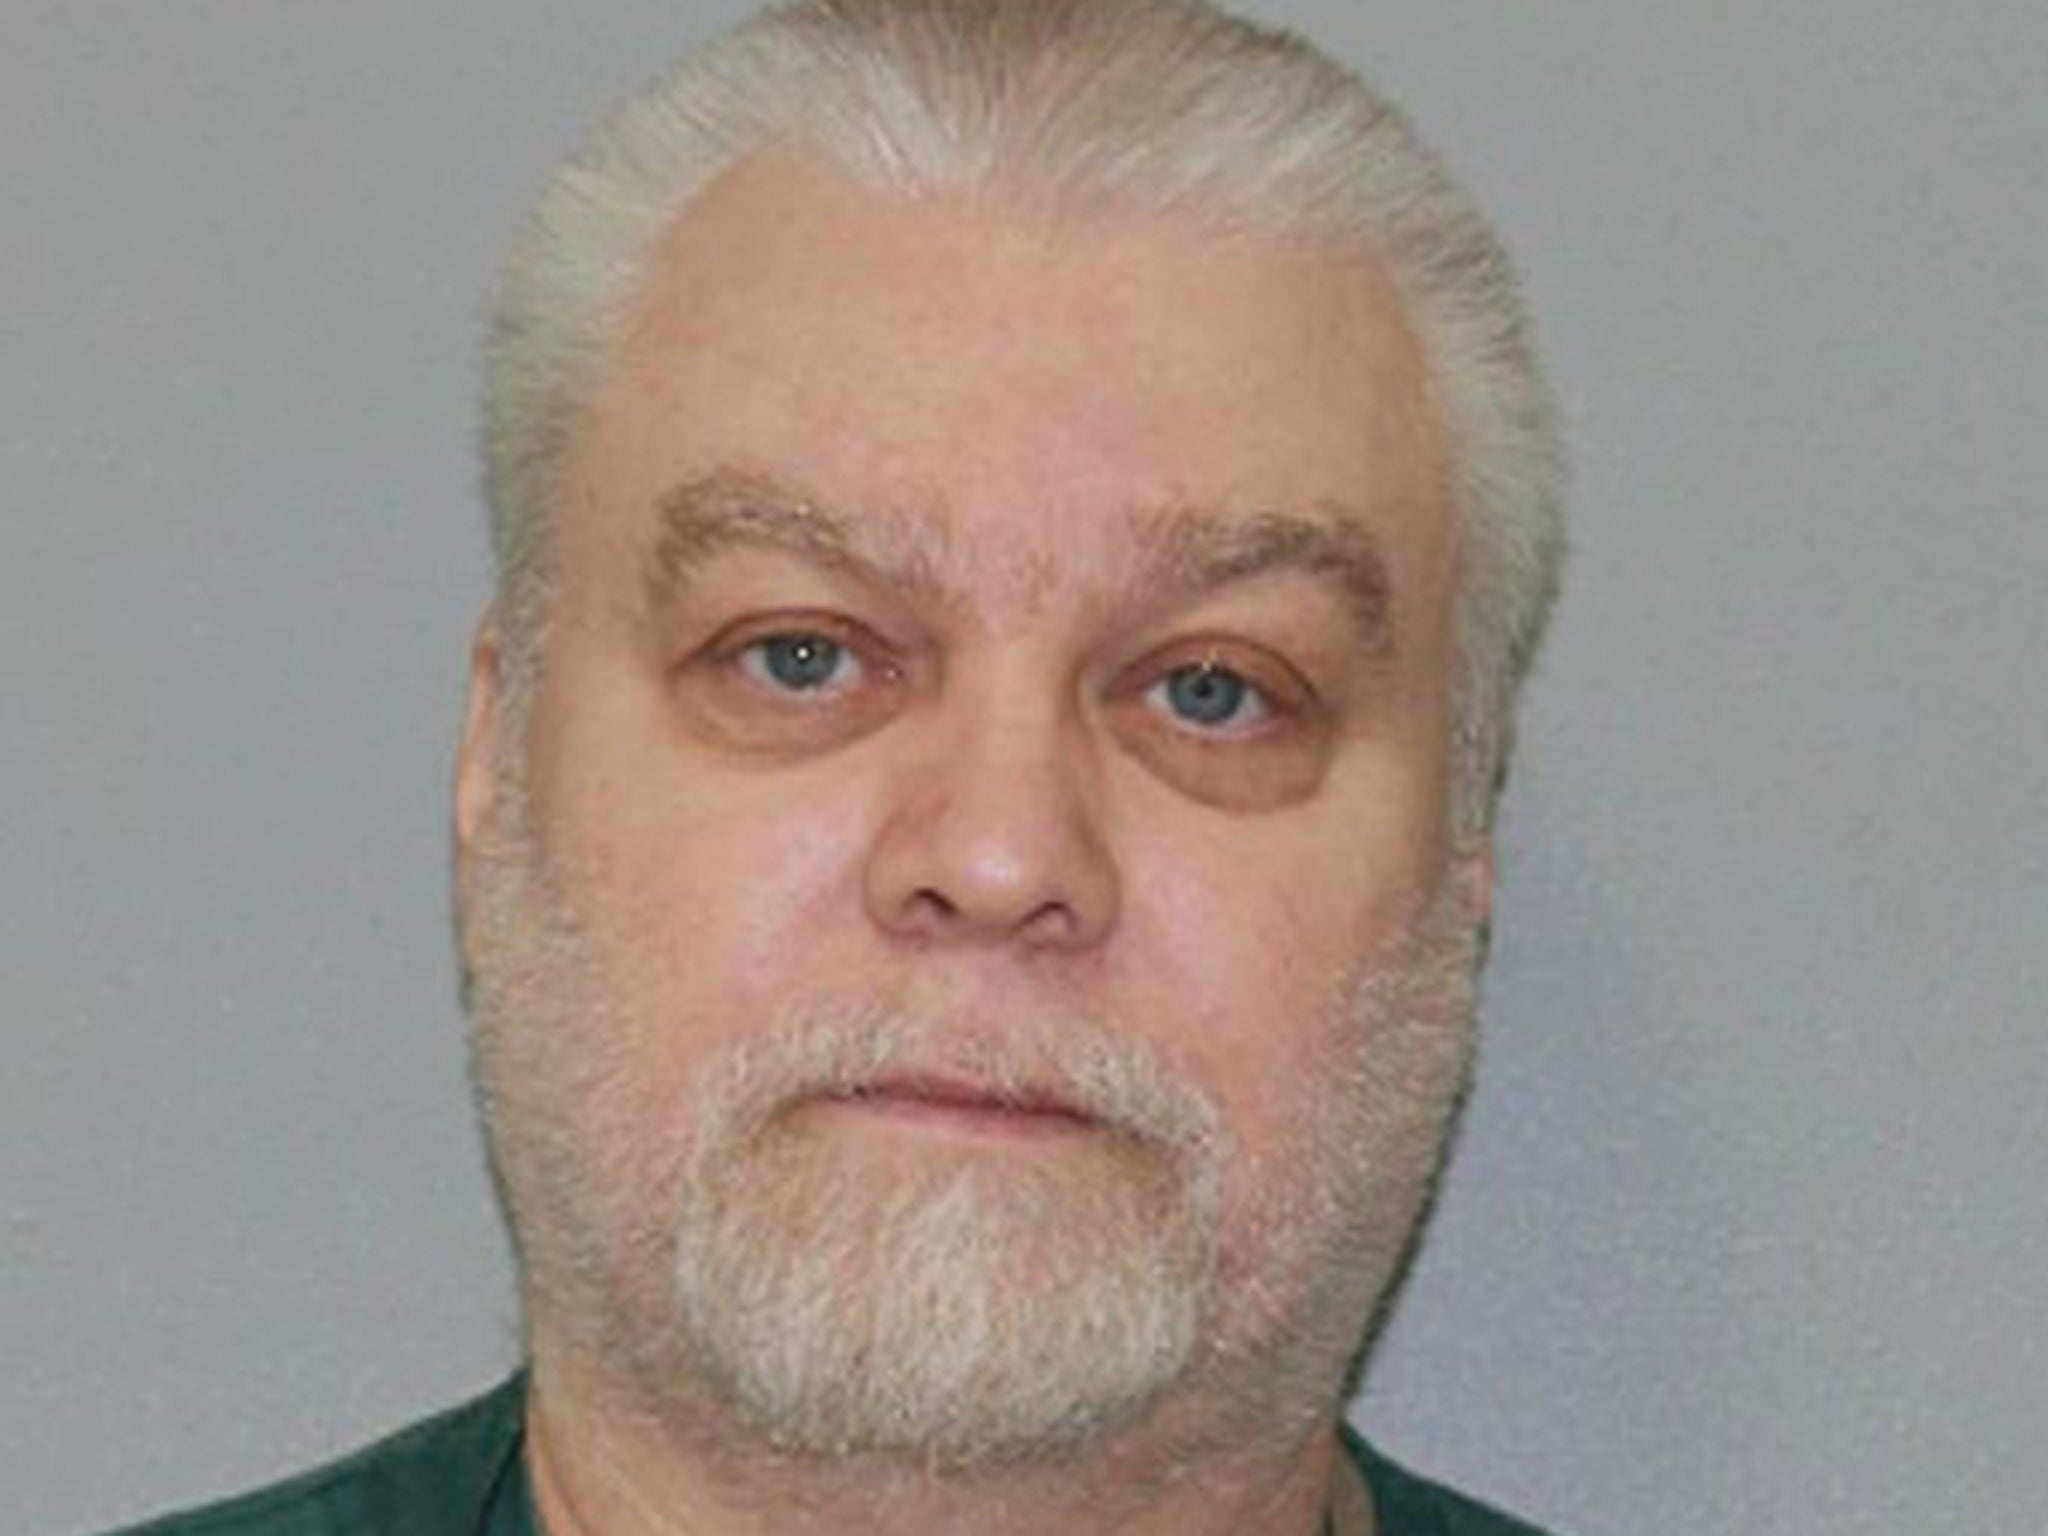 Making A Murderer's Steven Avery Cannot Be Pardoned By Barack Obama